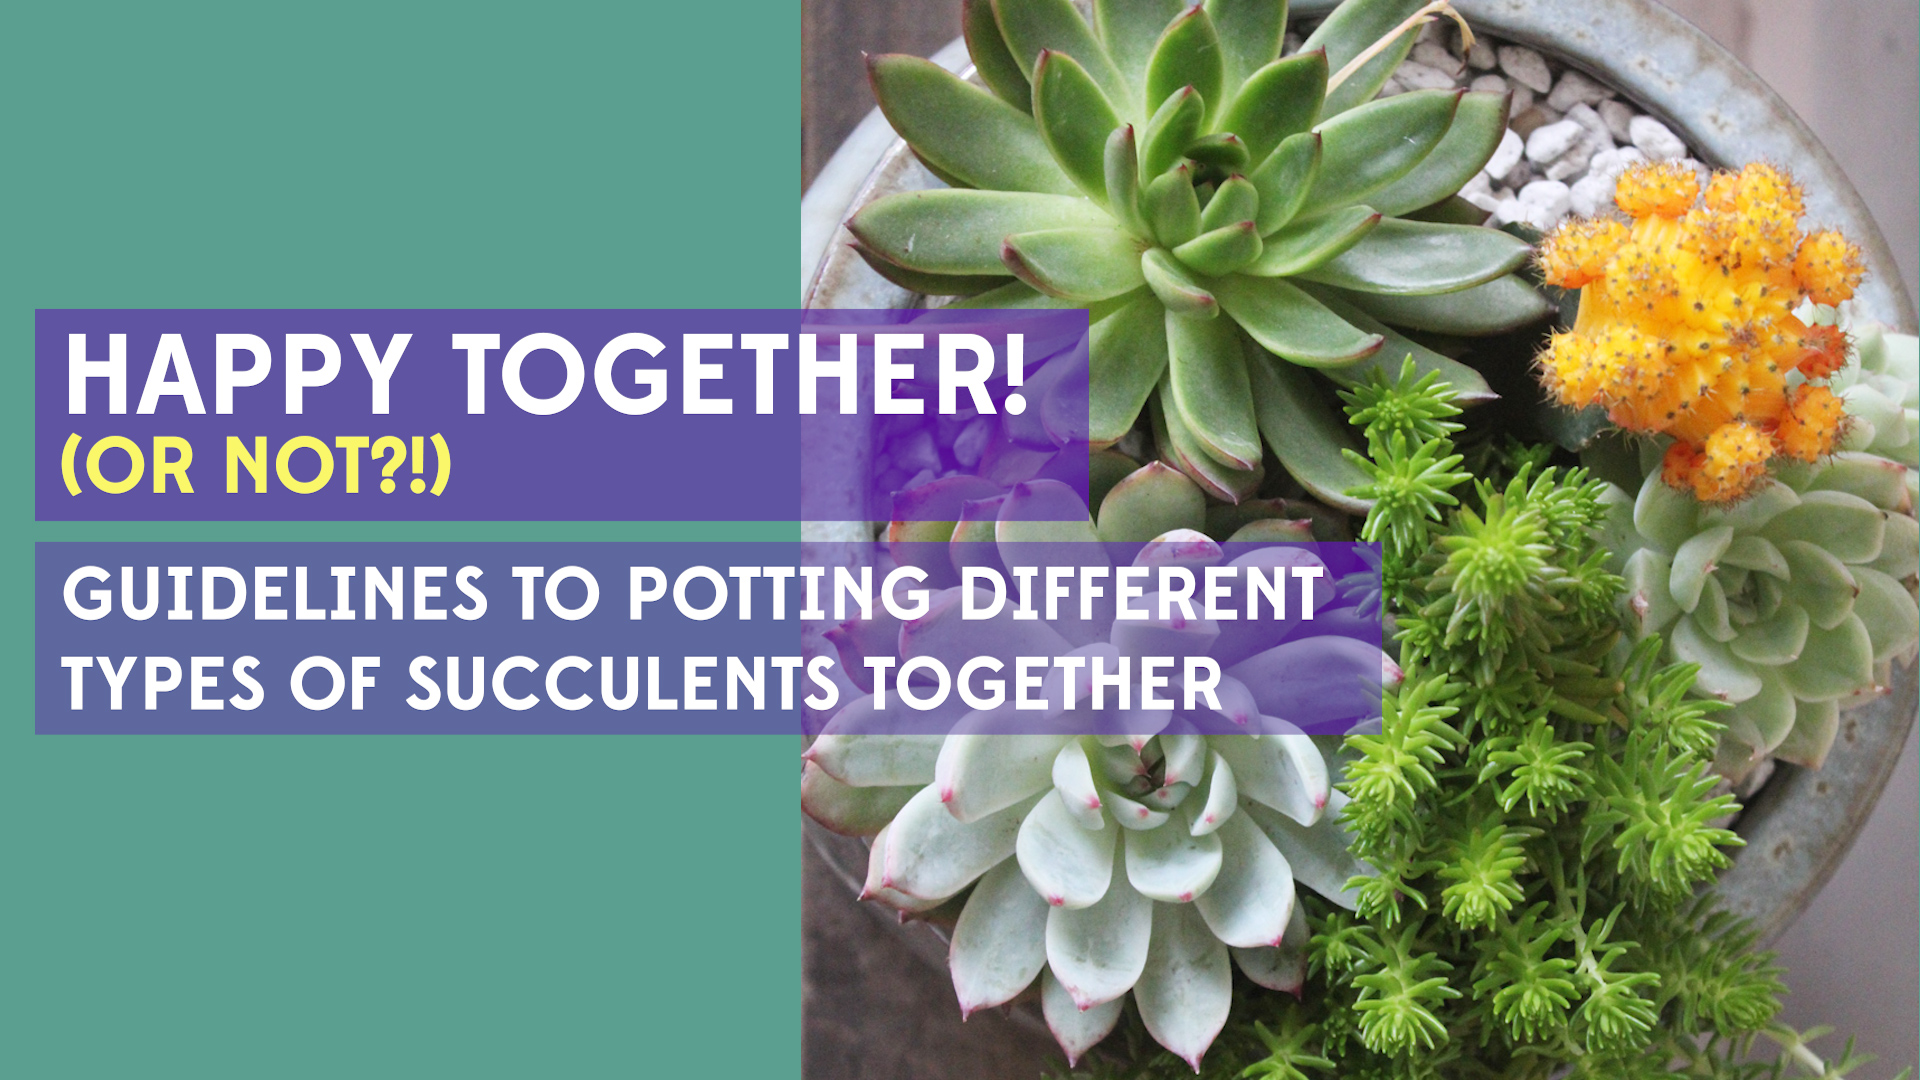 Potting different types of succulents together